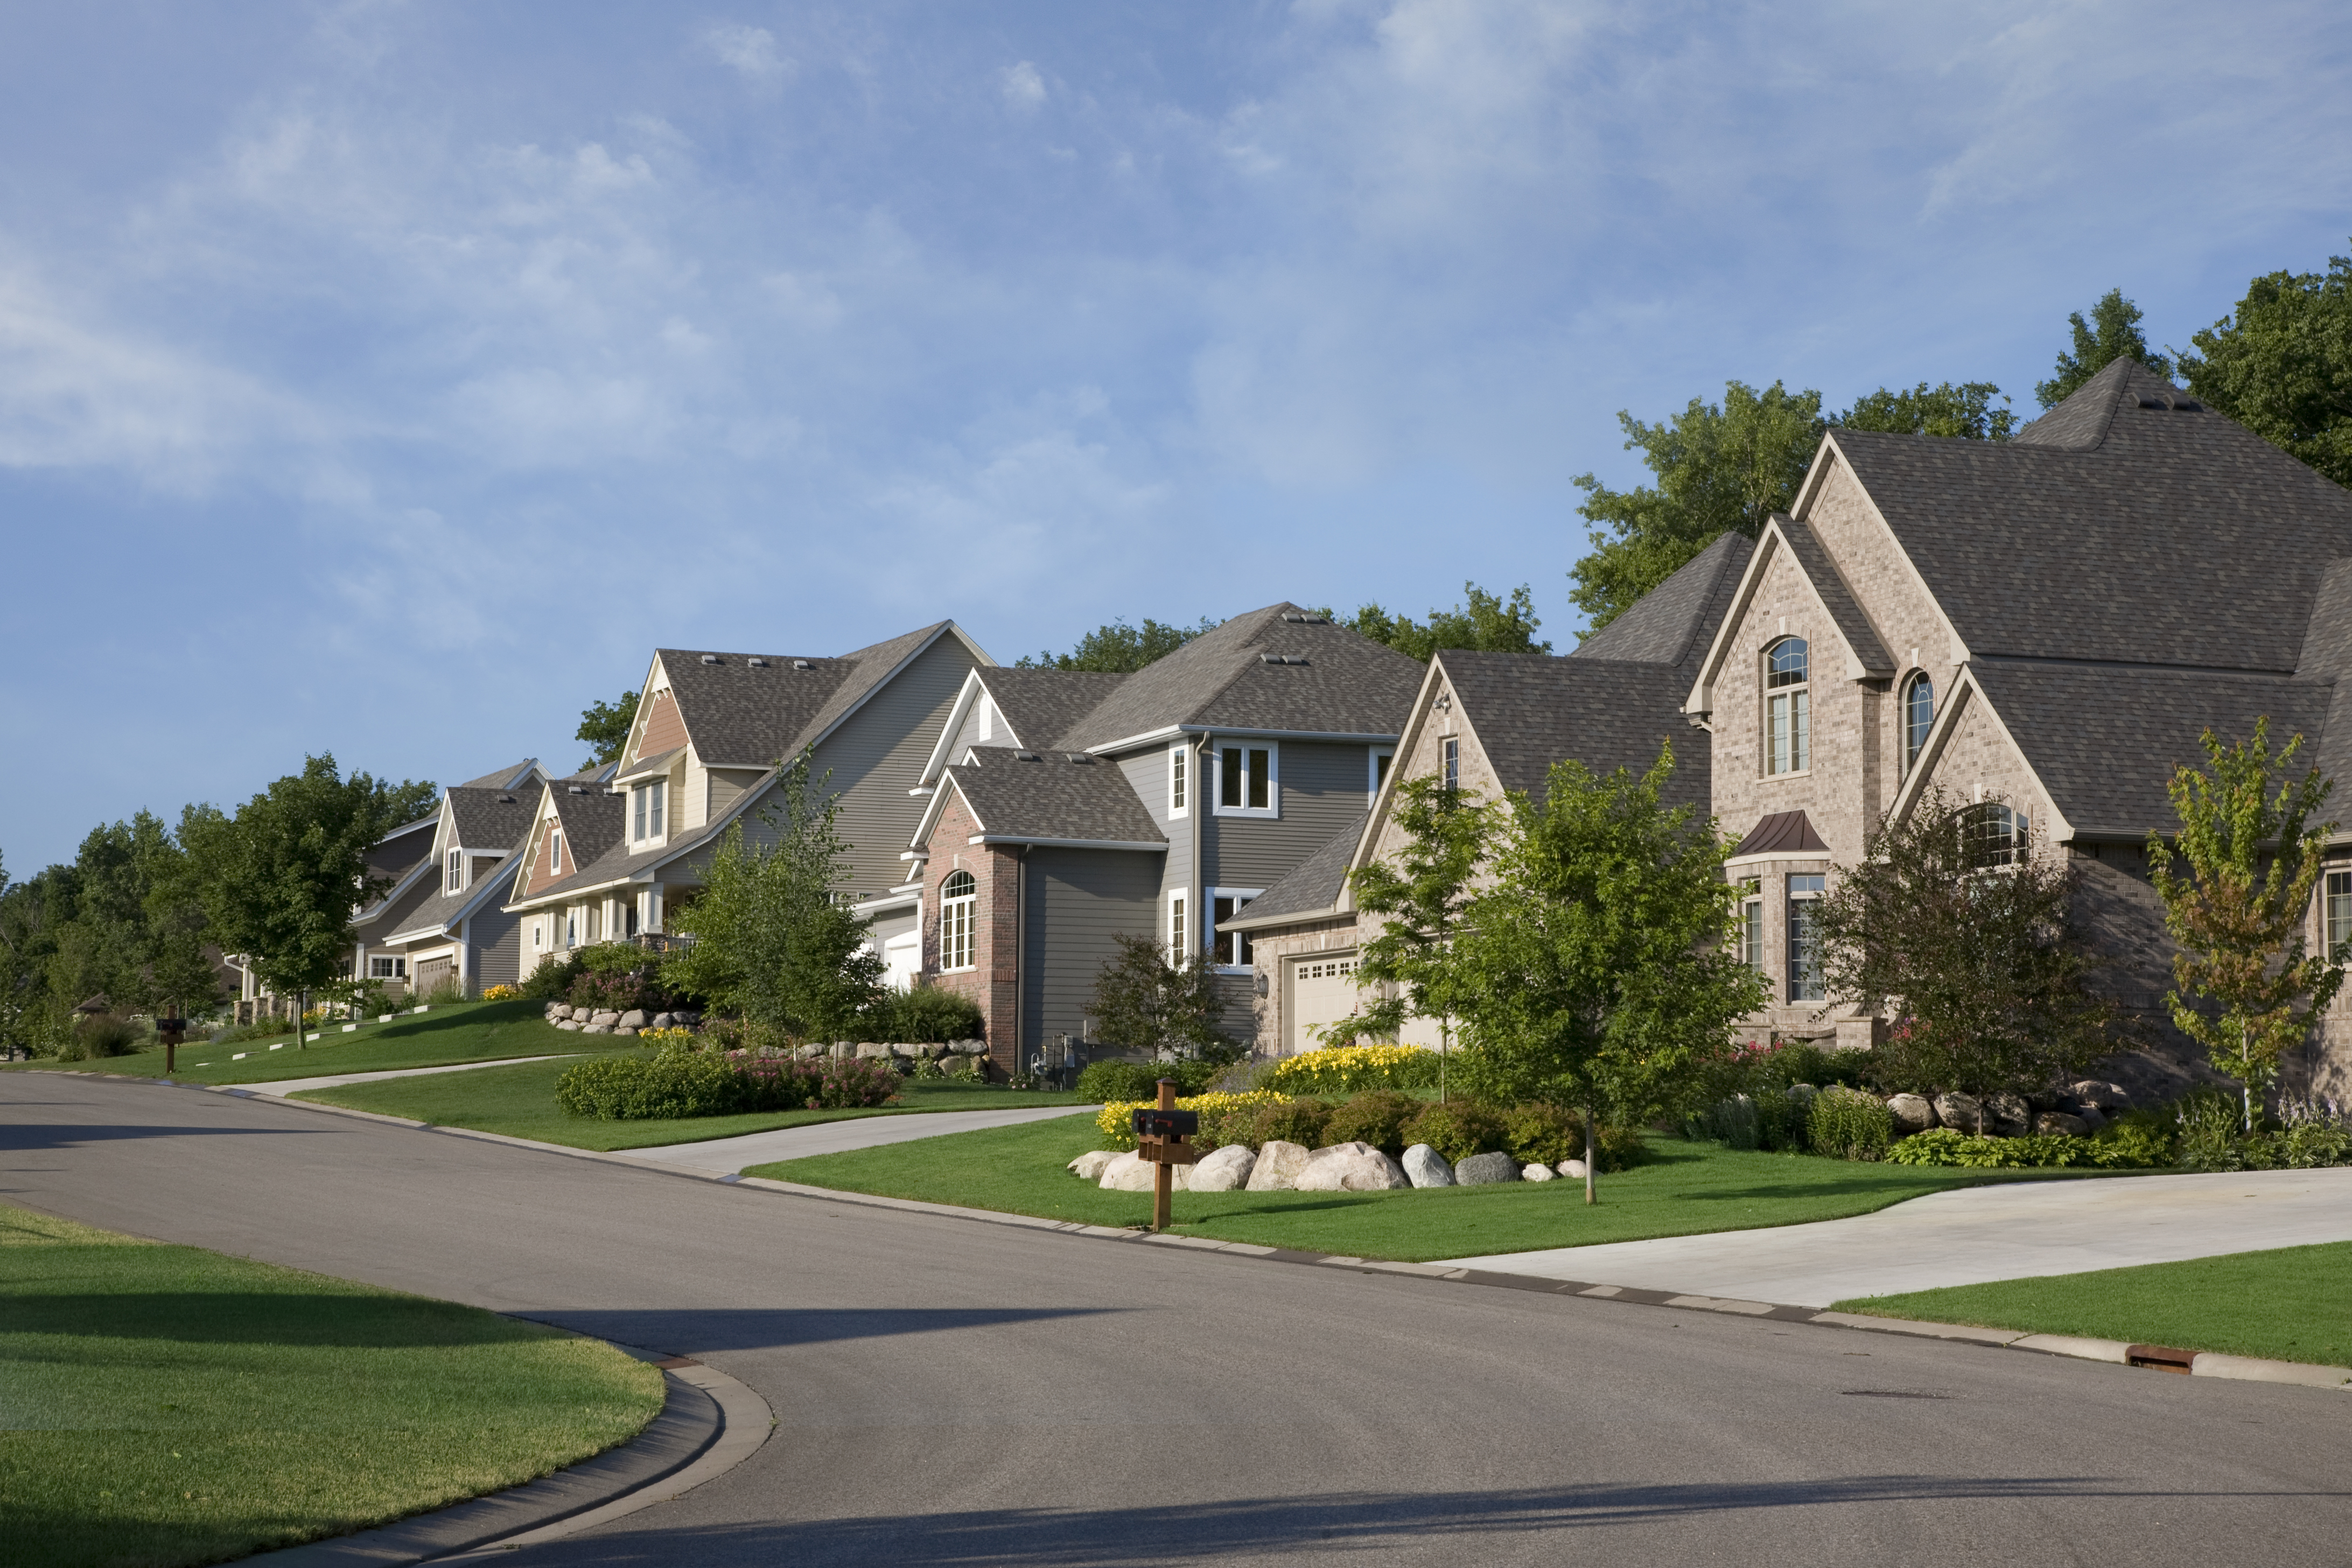 street-and-houses-of-upscale-neighborhood-on-a-NZAX52H